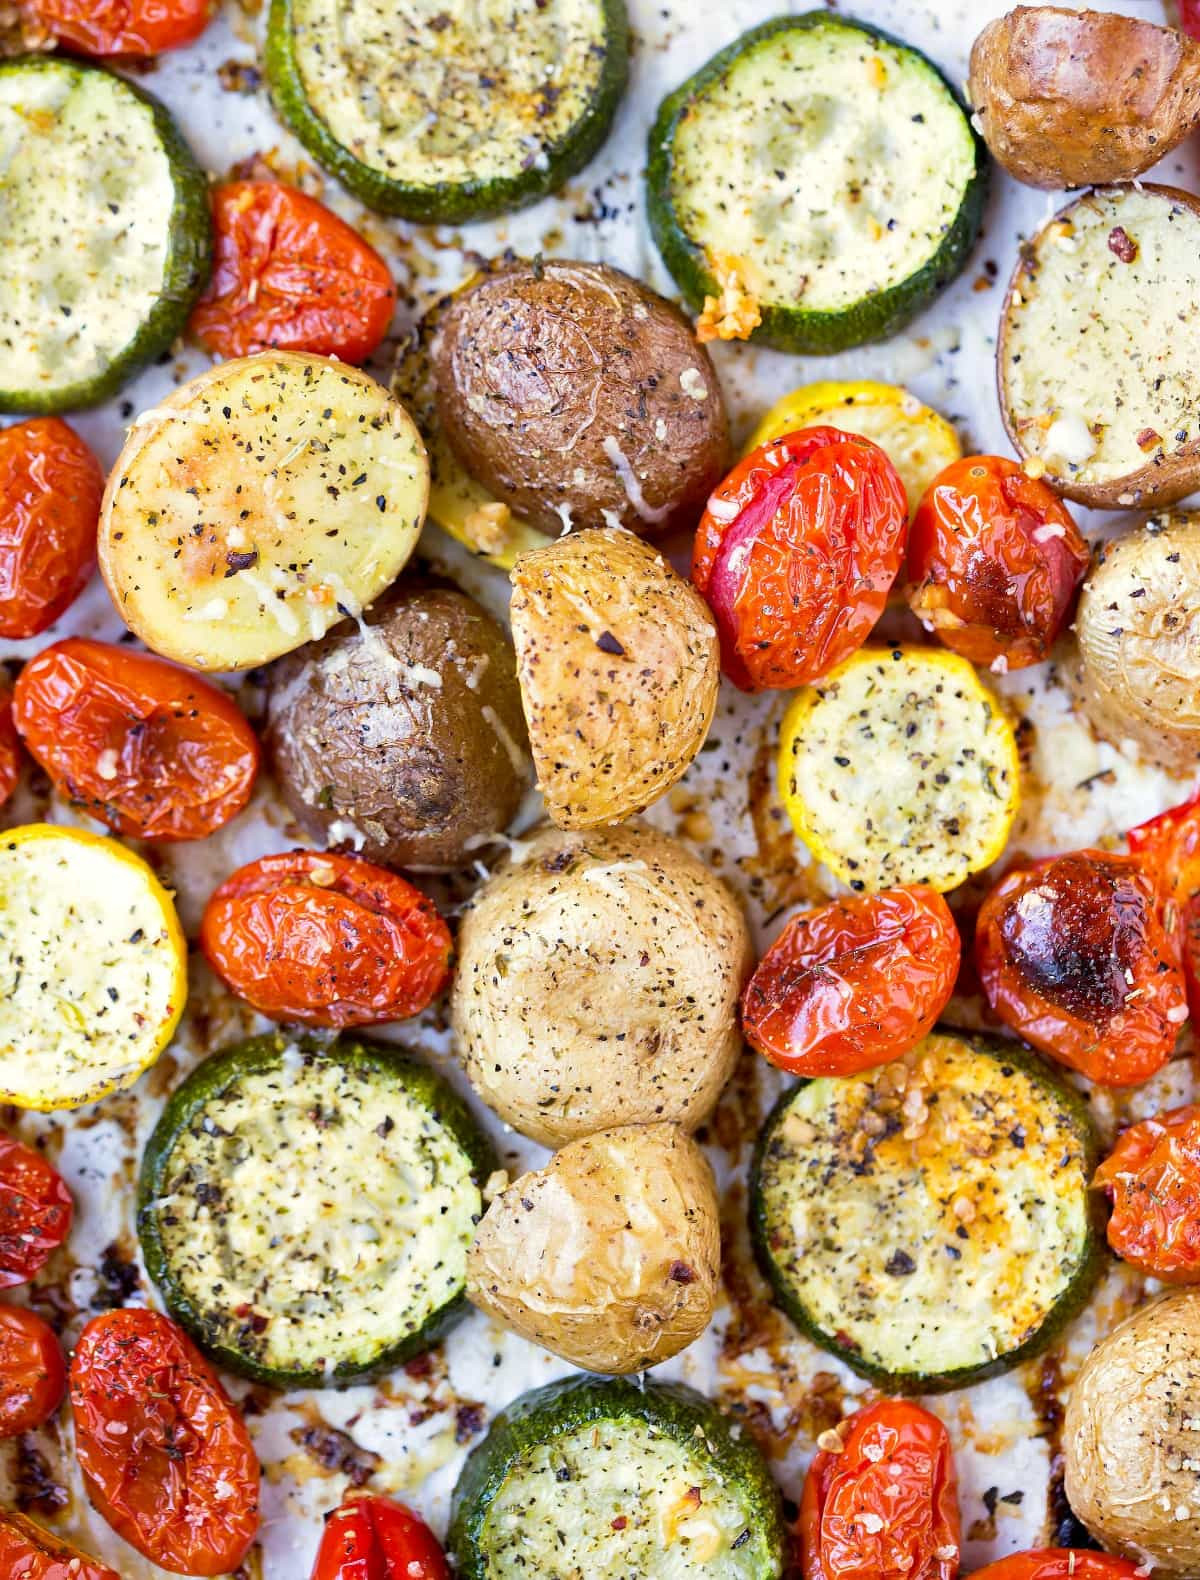 Roasted Vegetables Recipes  Roasted Summer Ve ables I Heart Eating